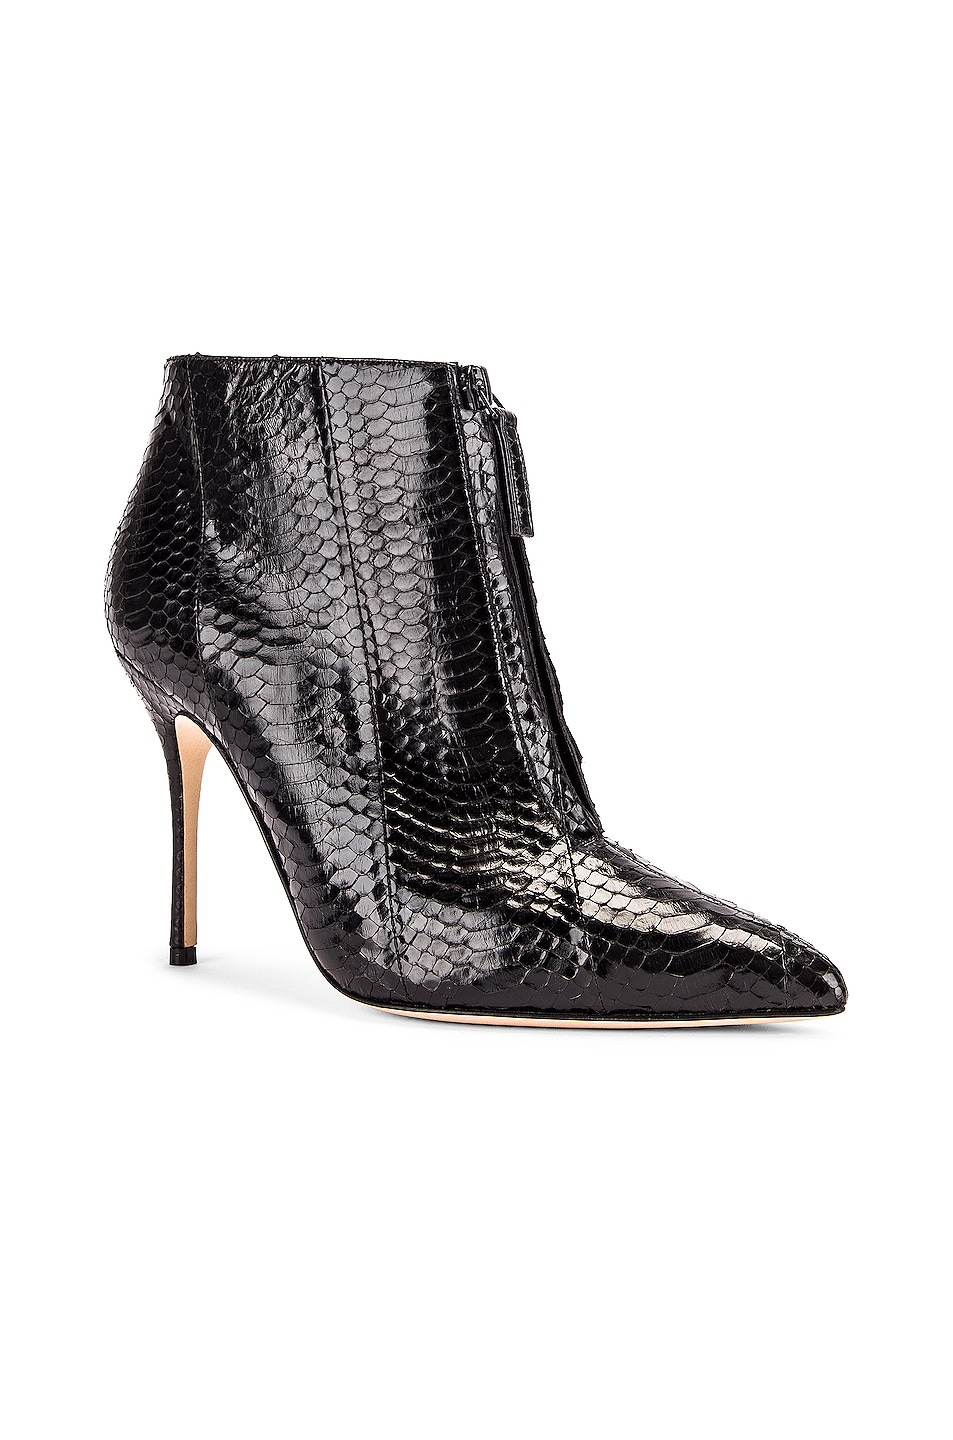 Image 2 of Manolo Blahnik Ifima 105 Bootie in Black Snake